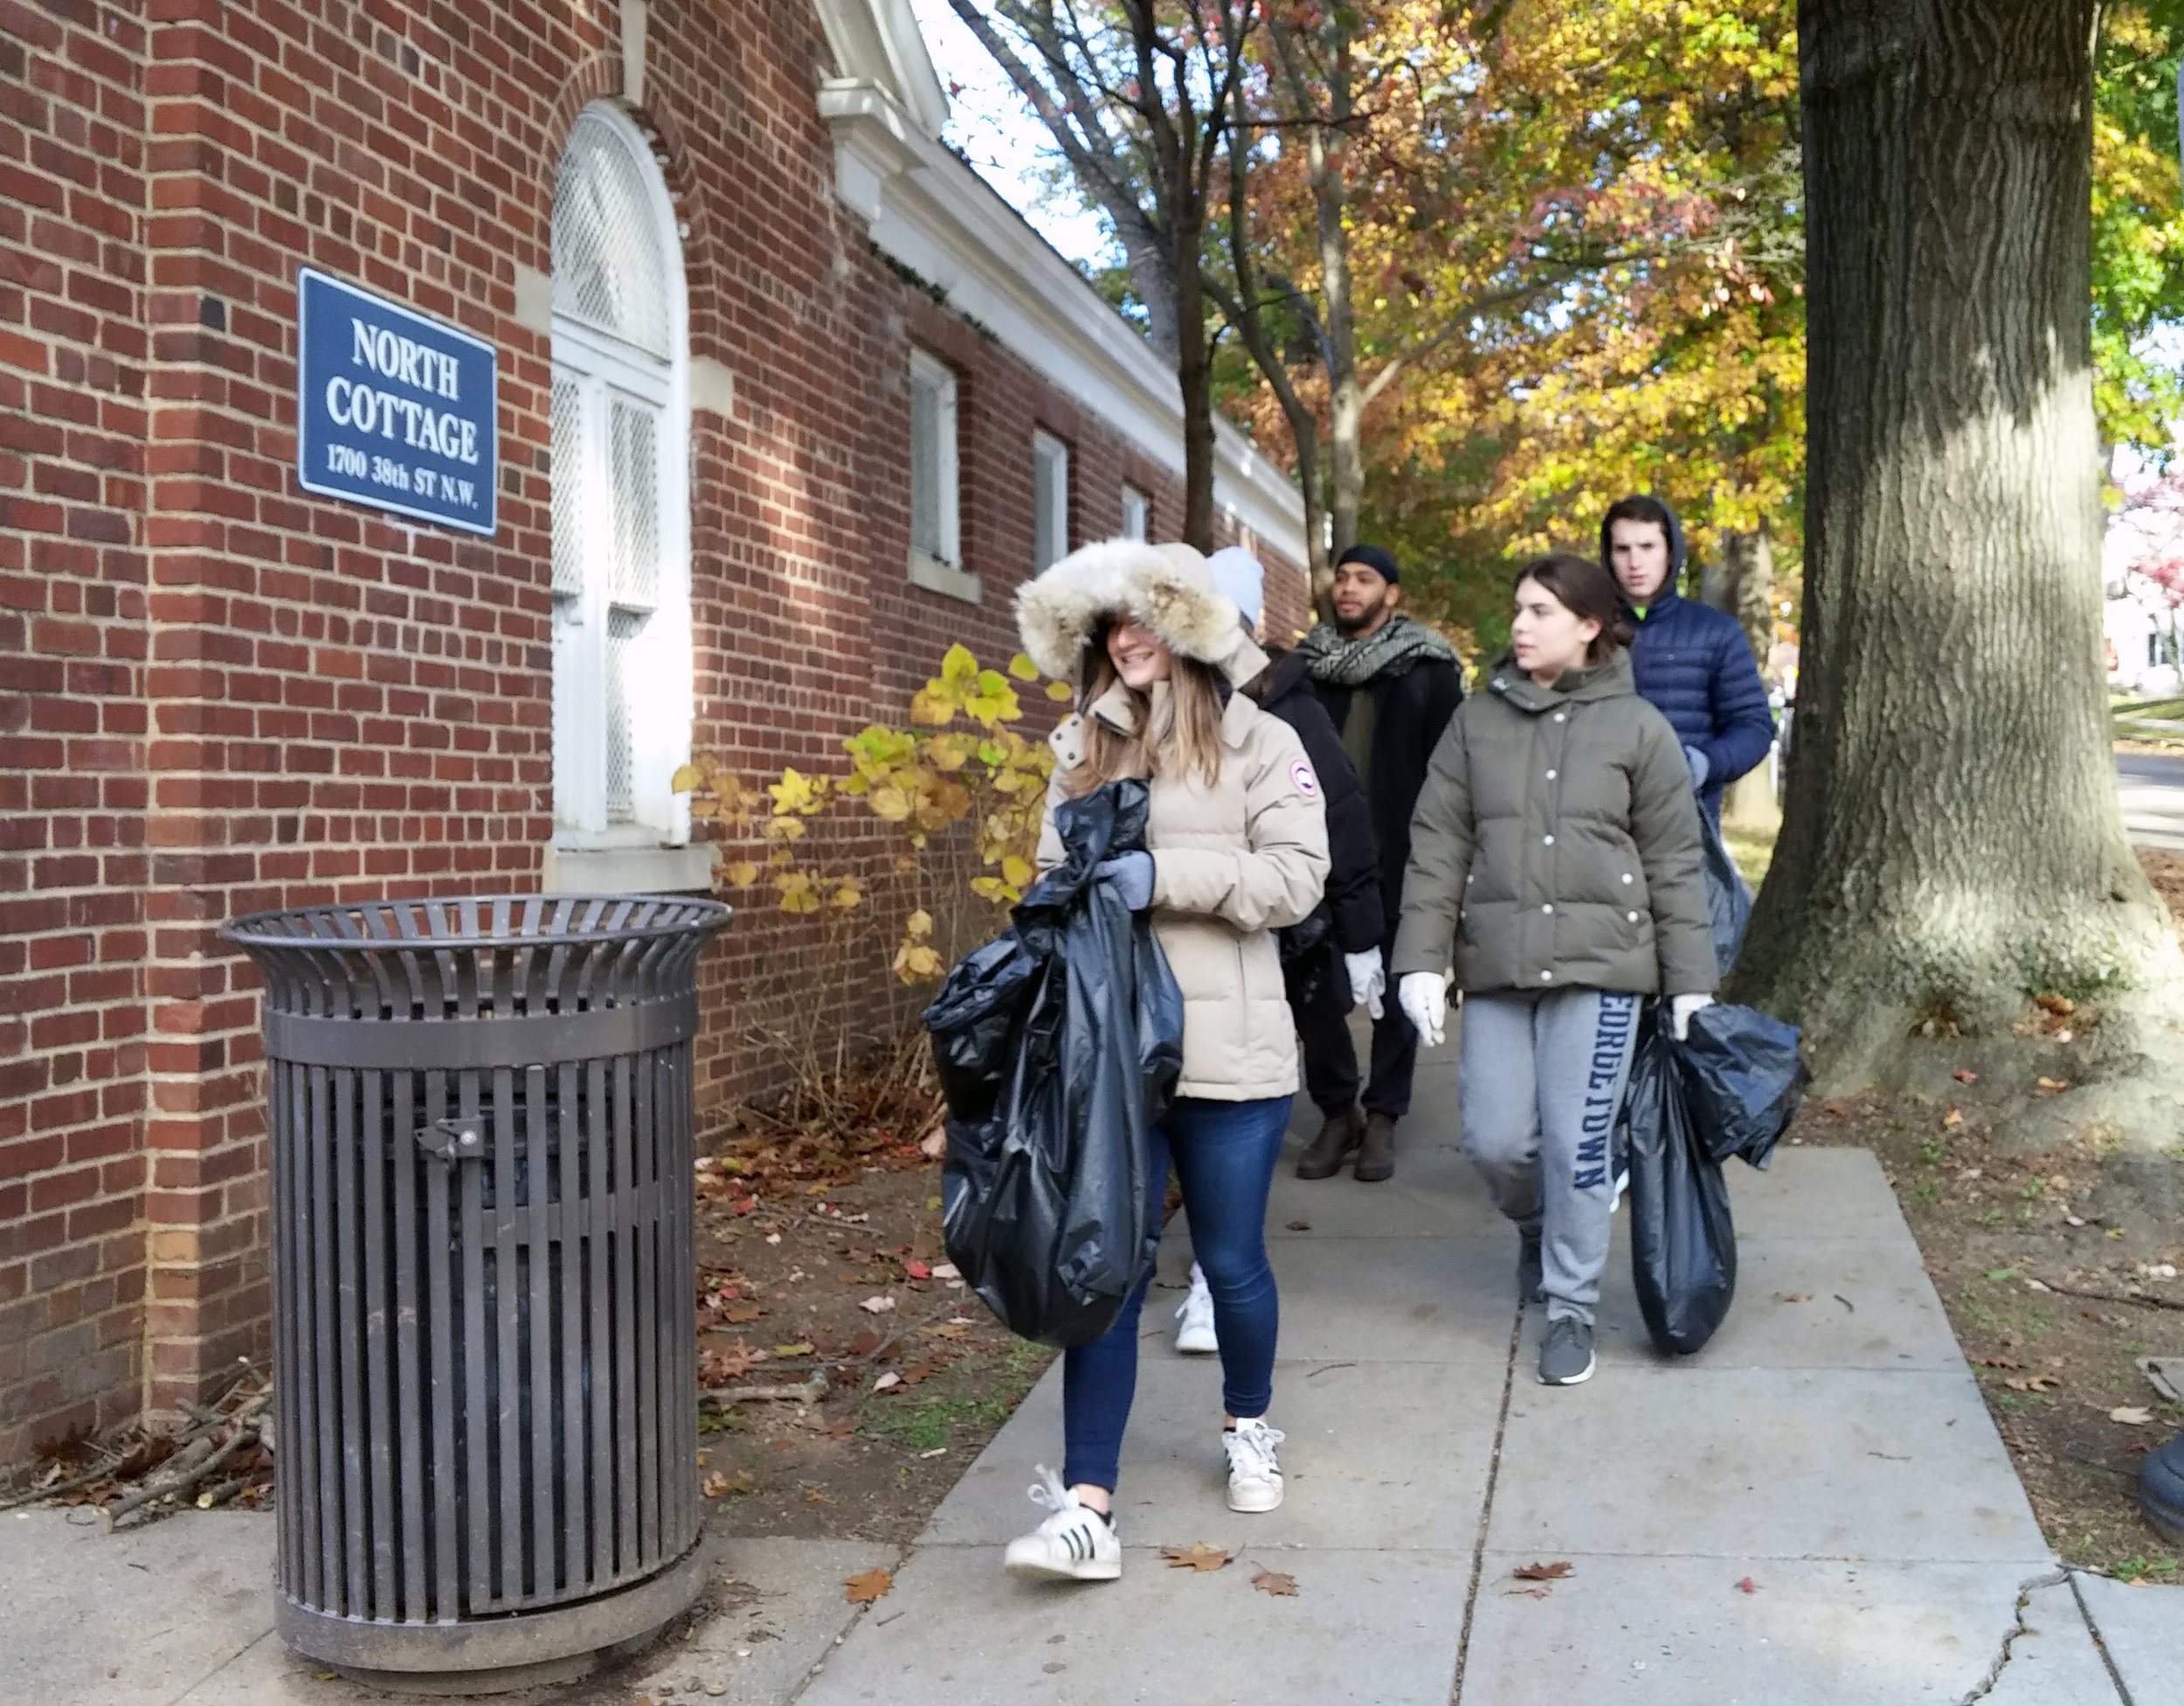 Georgetown University students showed up in force with over 20 volunteers. Thank you, GU!